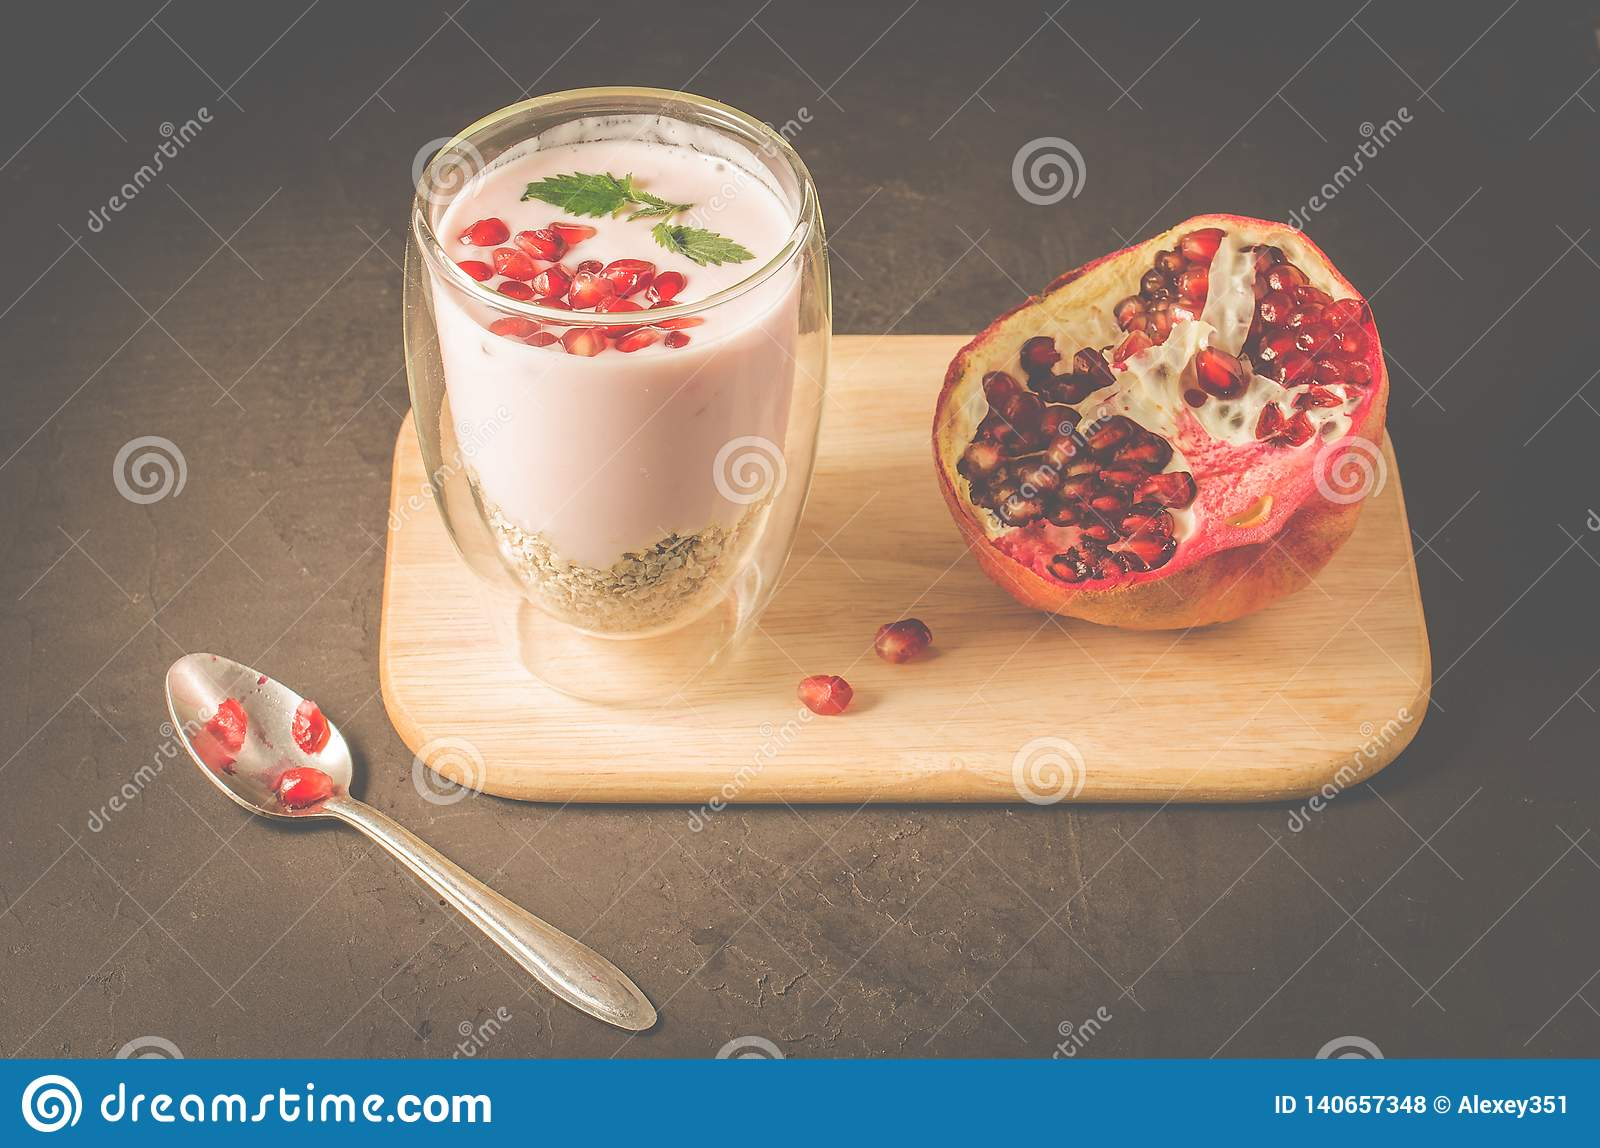 Yogurt. Yogurt with cereals, garnet and mint in glass and pomegranate fruit on a wooden tray. Dark backgtound table. Sweet dessert